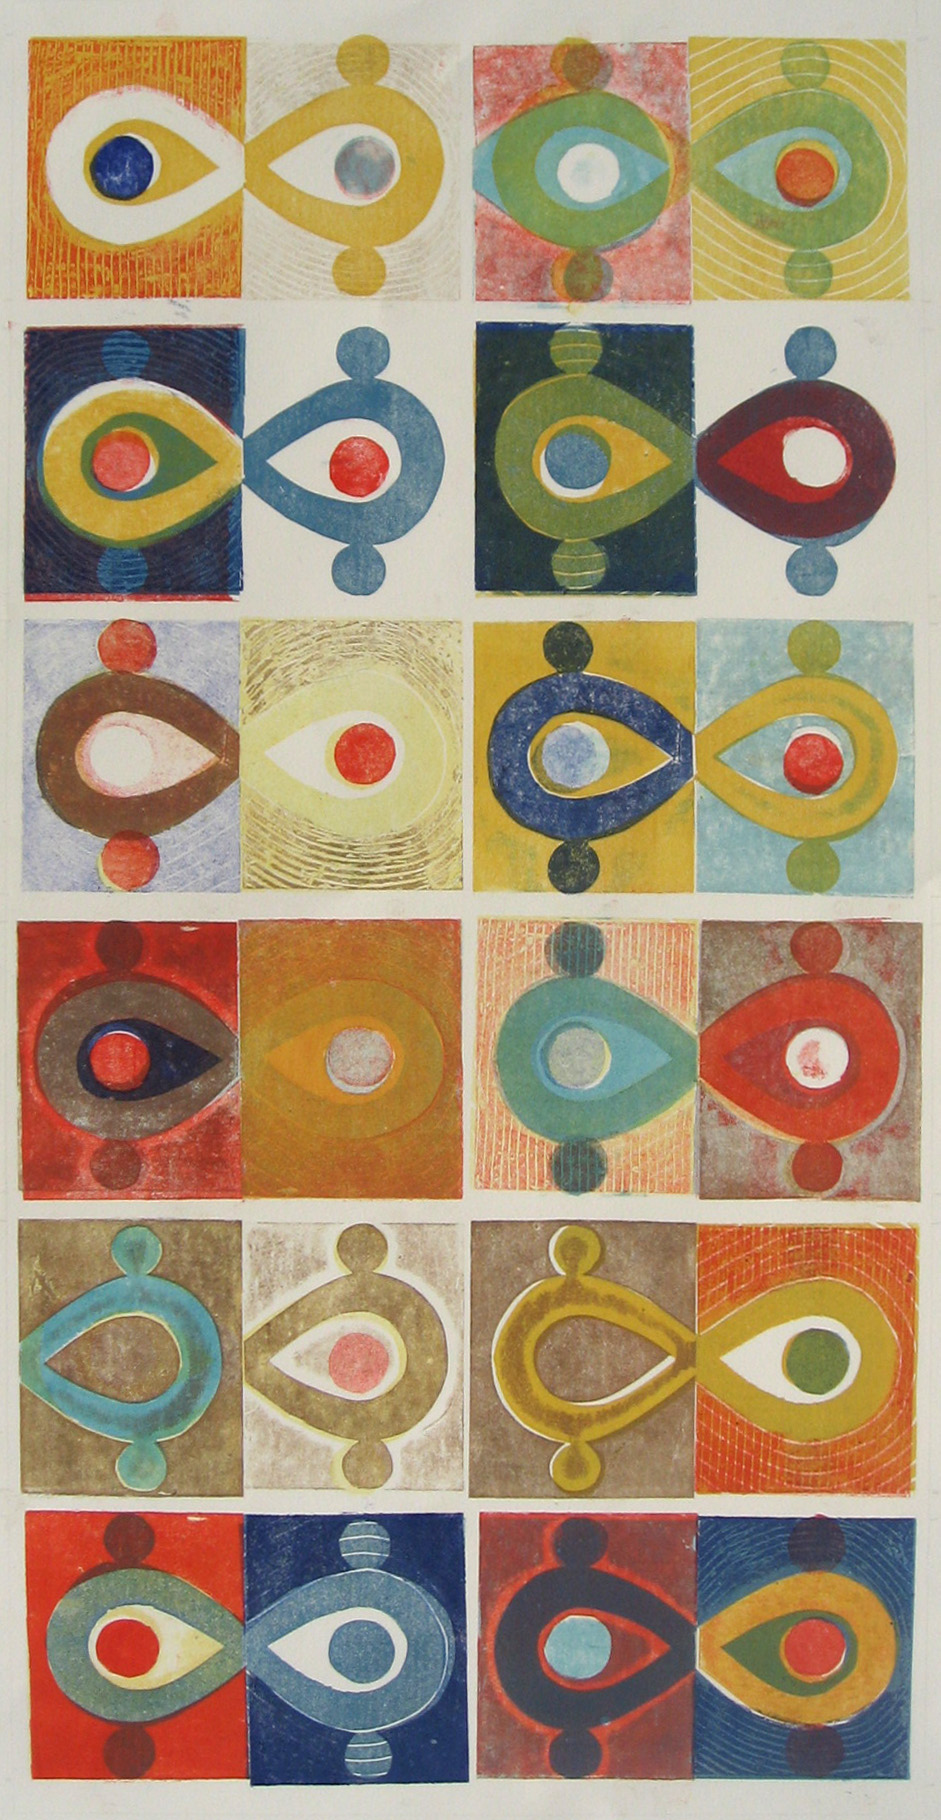 <p><strong>JULIA TALCOTT</strong>printmaking<a href=/julia-talcott>More →</a></p>